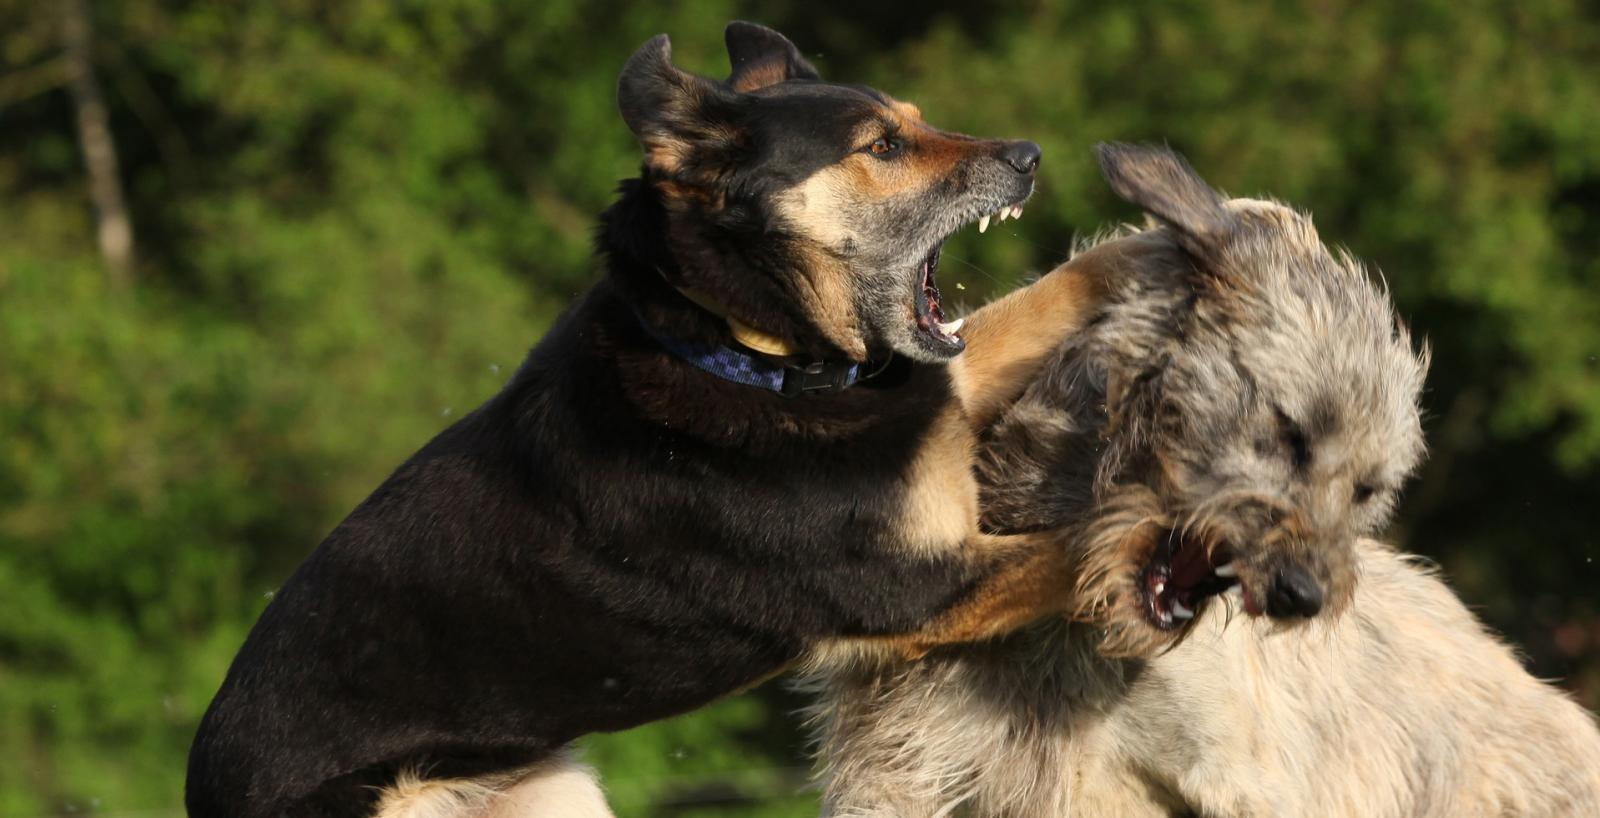 Are You Experiencing Aggressive Behavior With Your Dog If So We Can Help